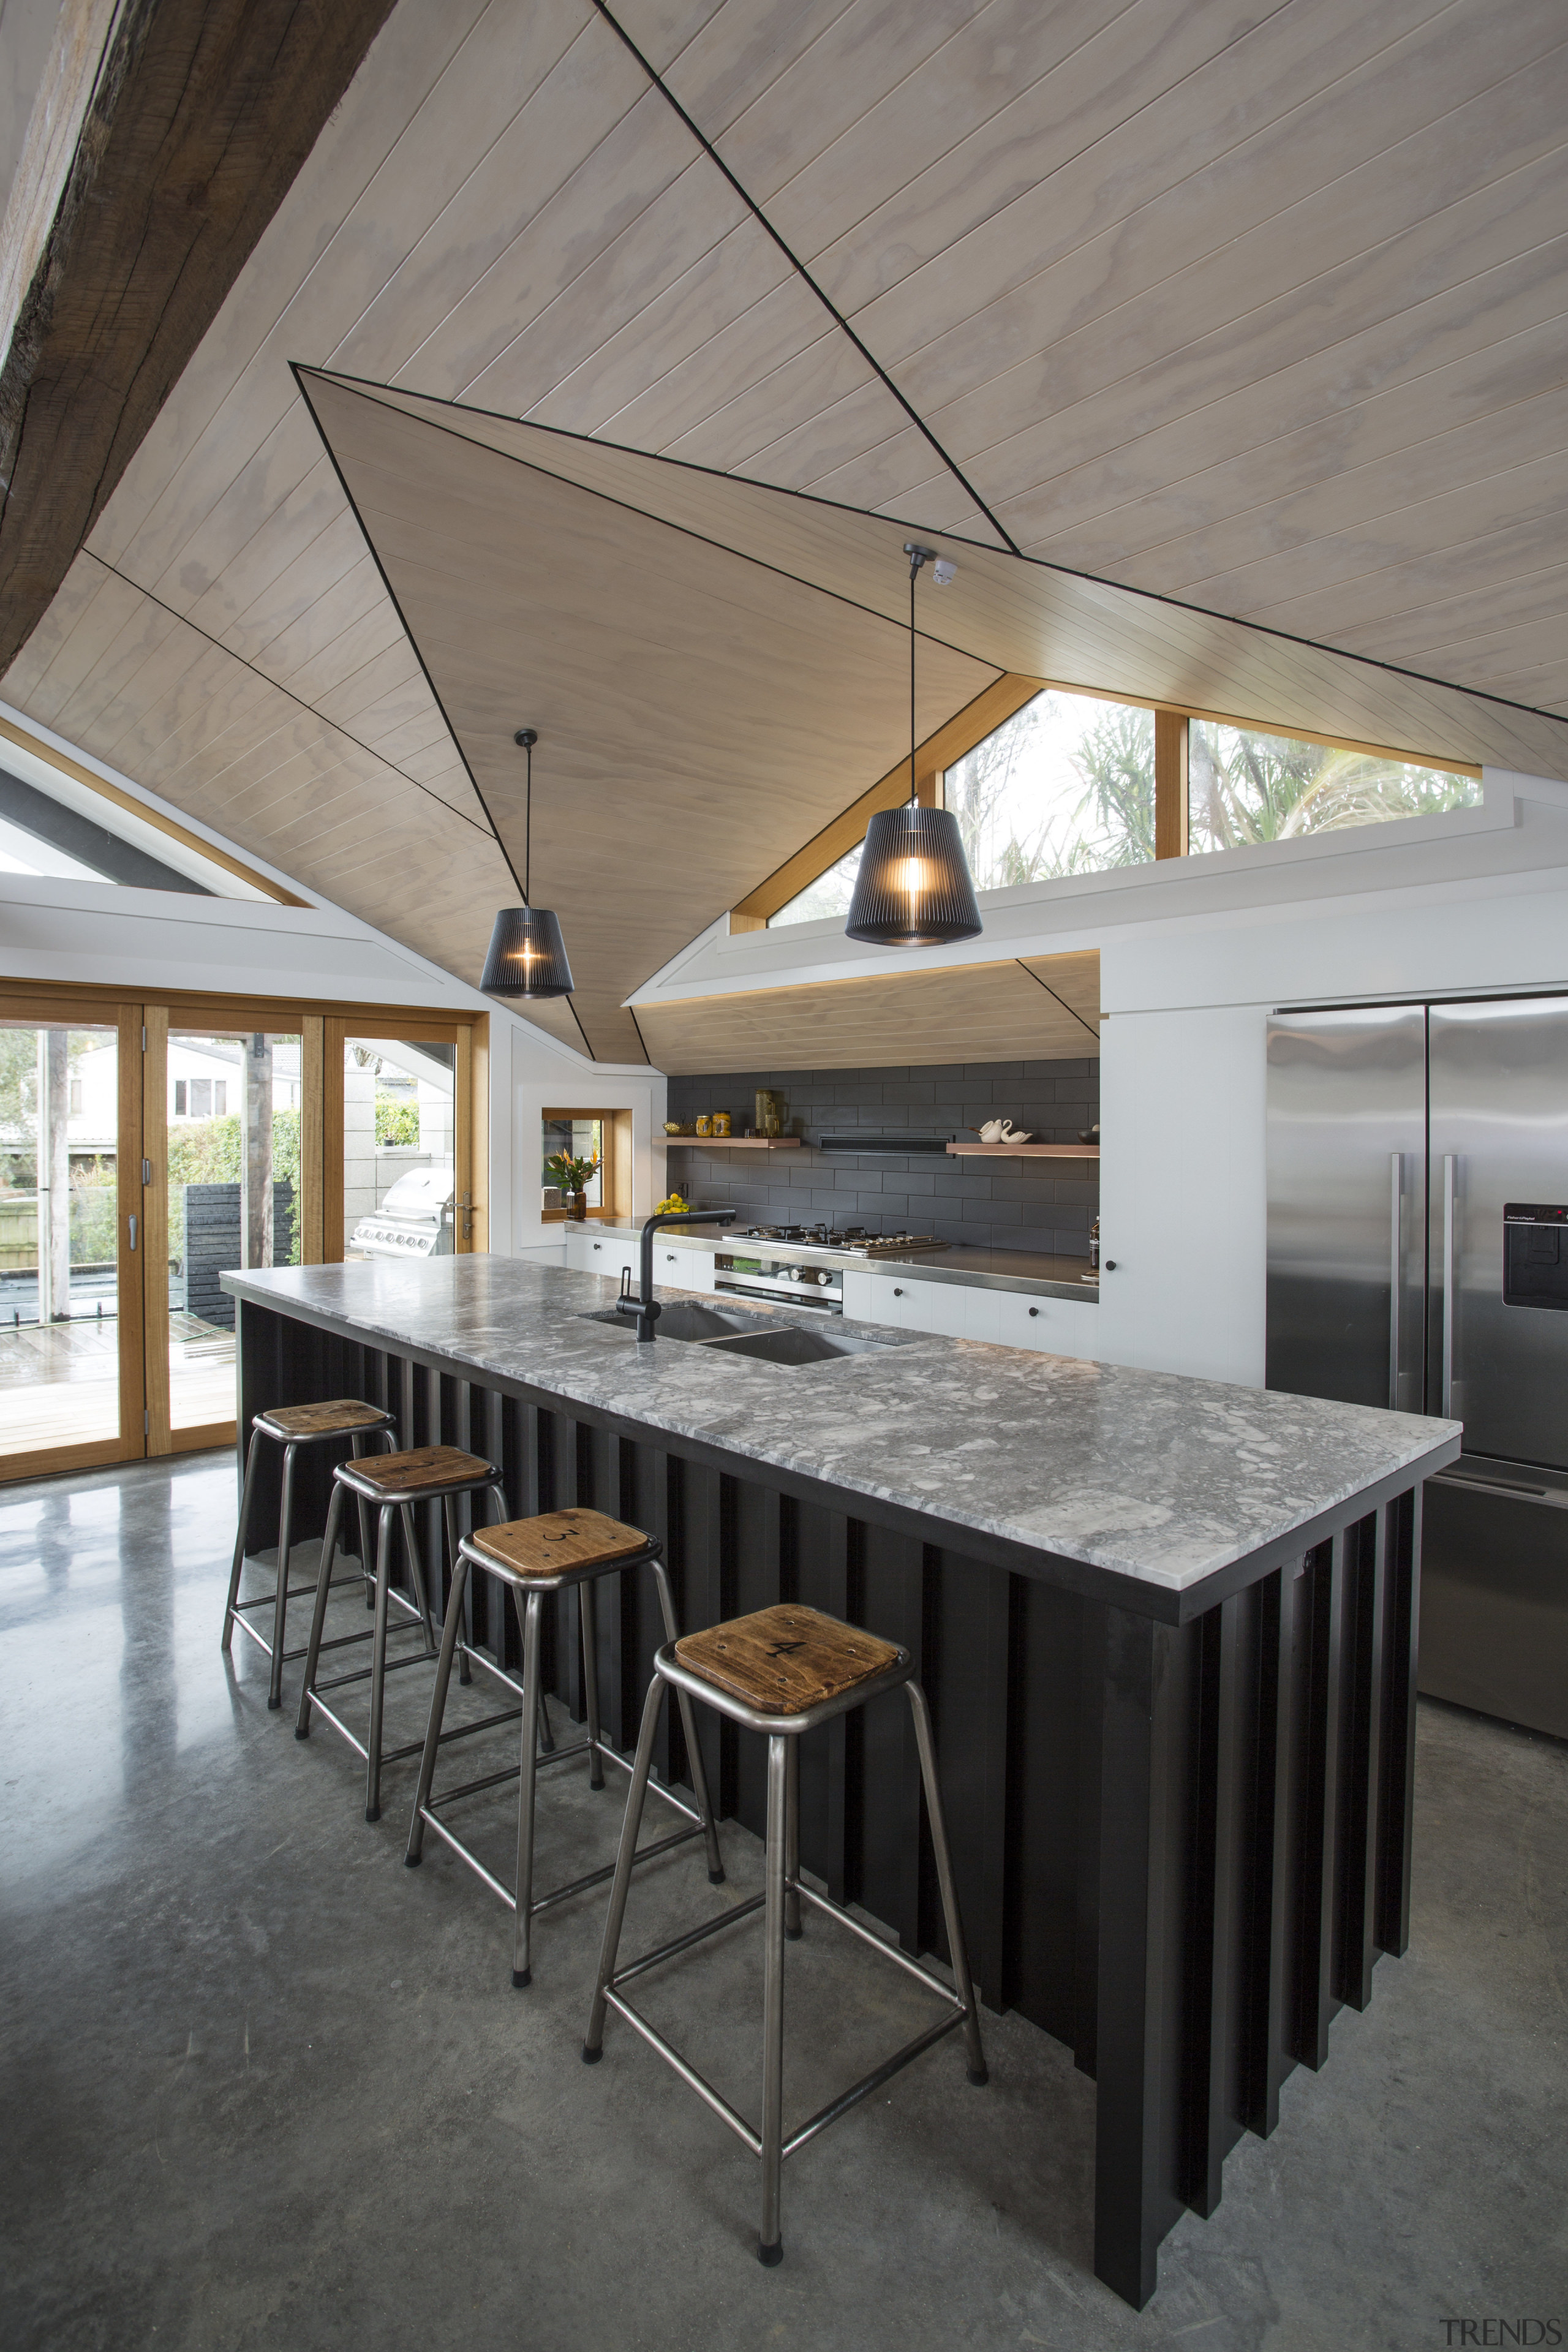 Vertical battens on the front and sides of architecture, beam, ceiling, countertop, floor, flooring, furniture, house, interior design, table, gray, black